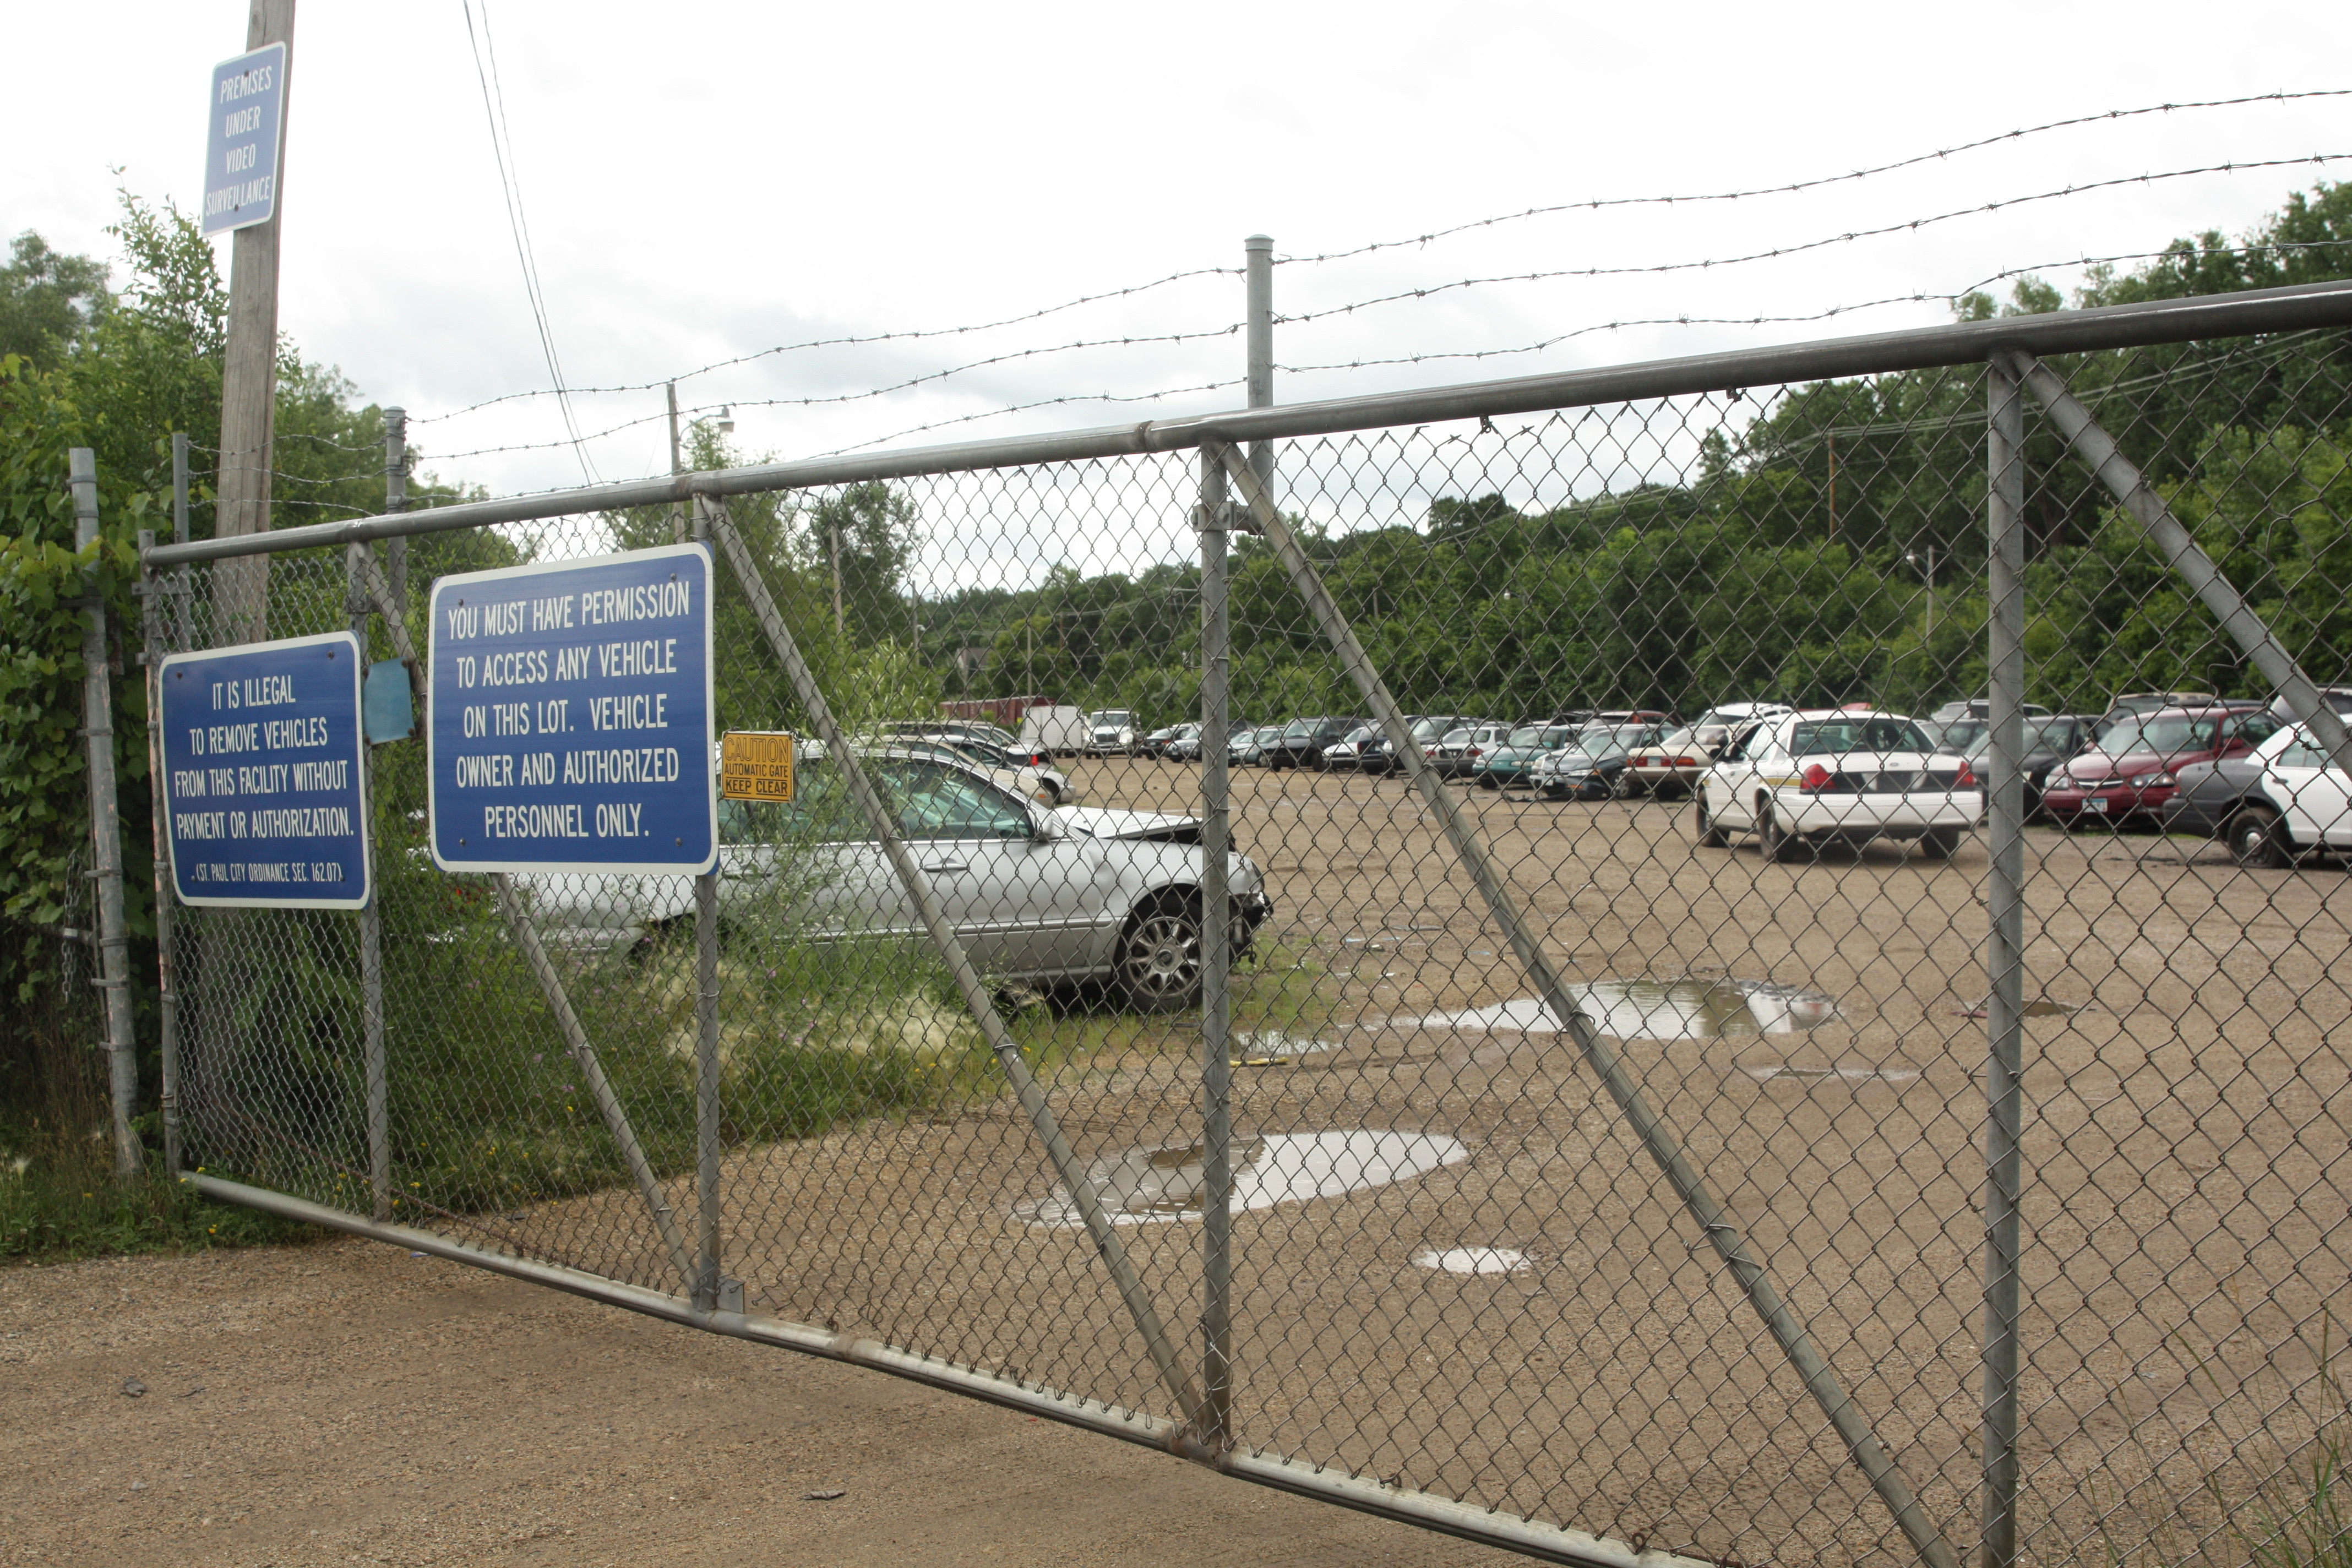 The view of the impound lot through the main gate.